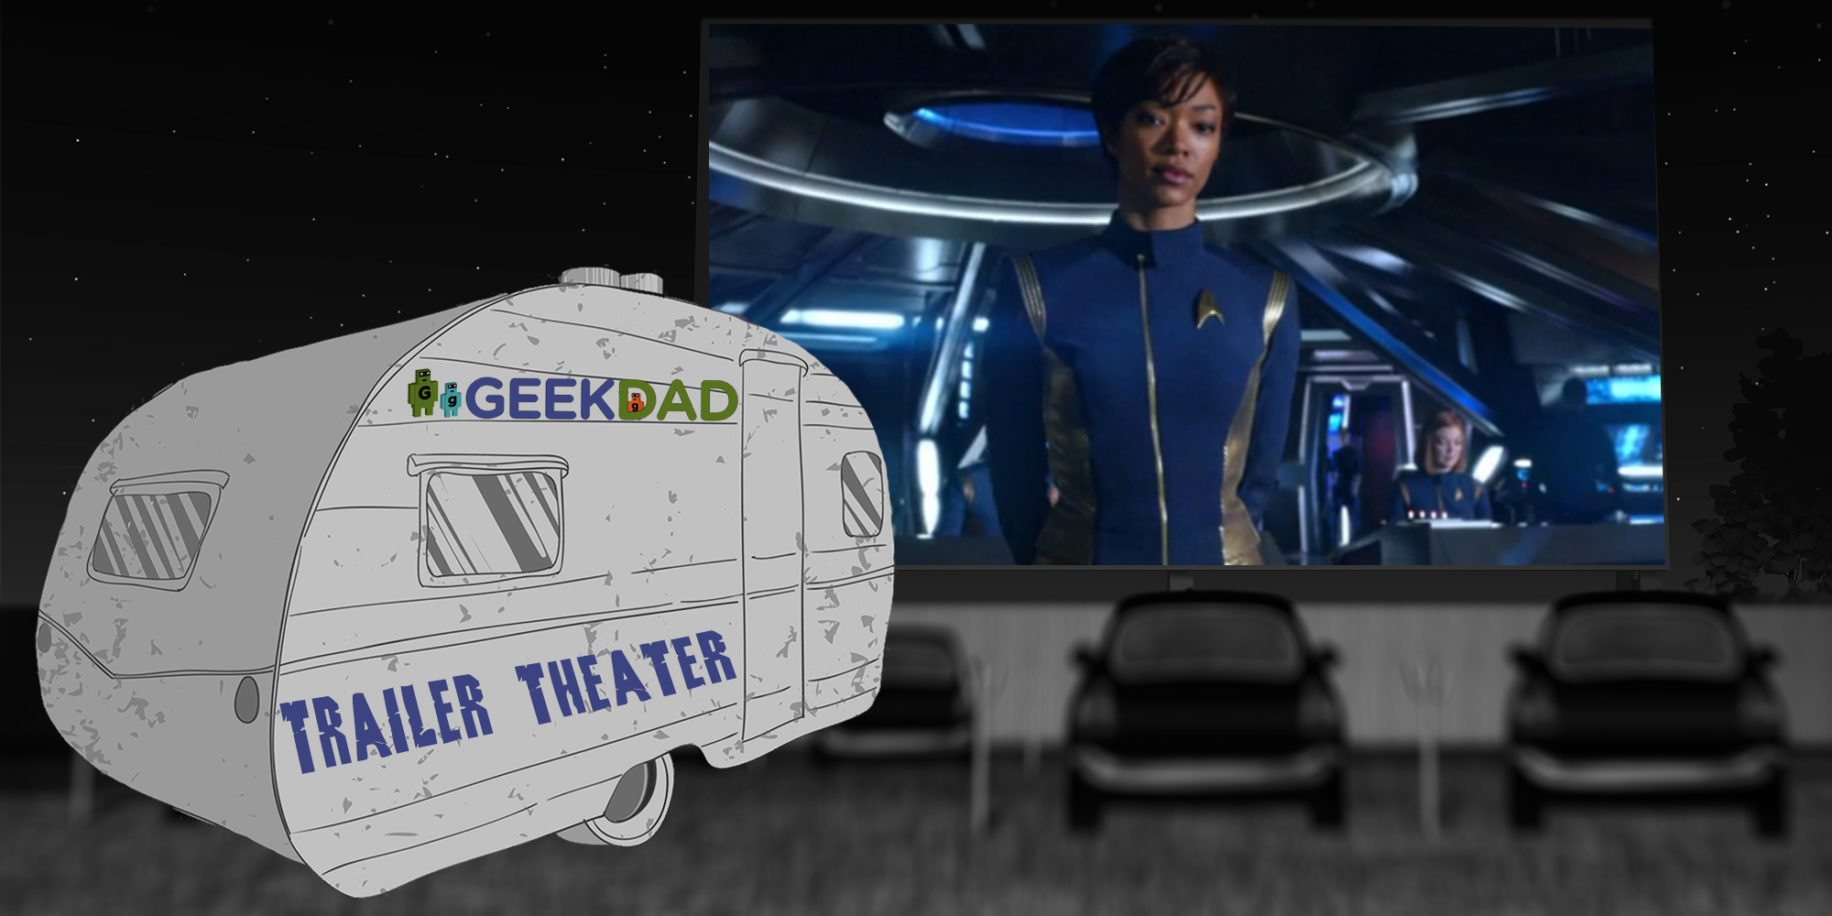 Trailer Theater: From 'Dark Crystal' to 'Star Trek' – So Much Great TV